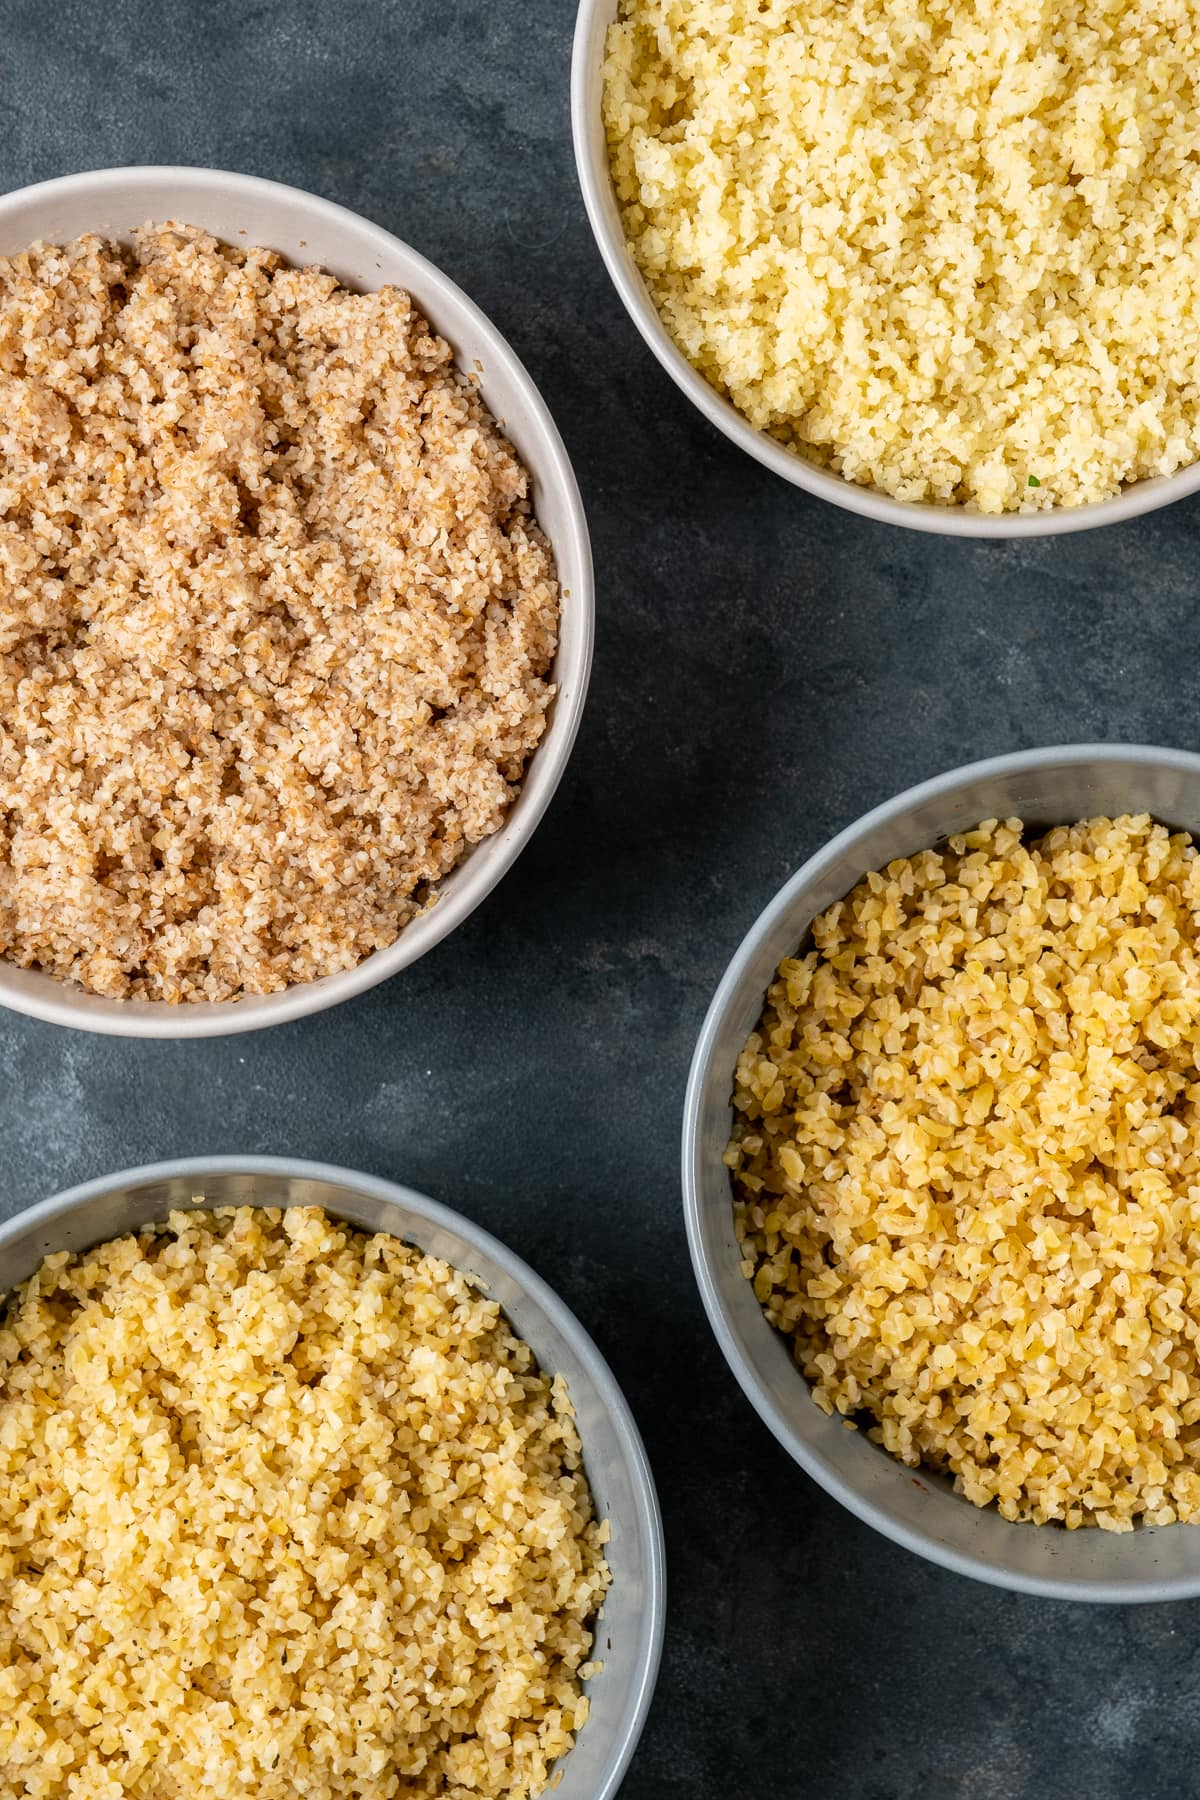 Fine bulgur and medium bulgur after soaked in four different bowls on a dark background.